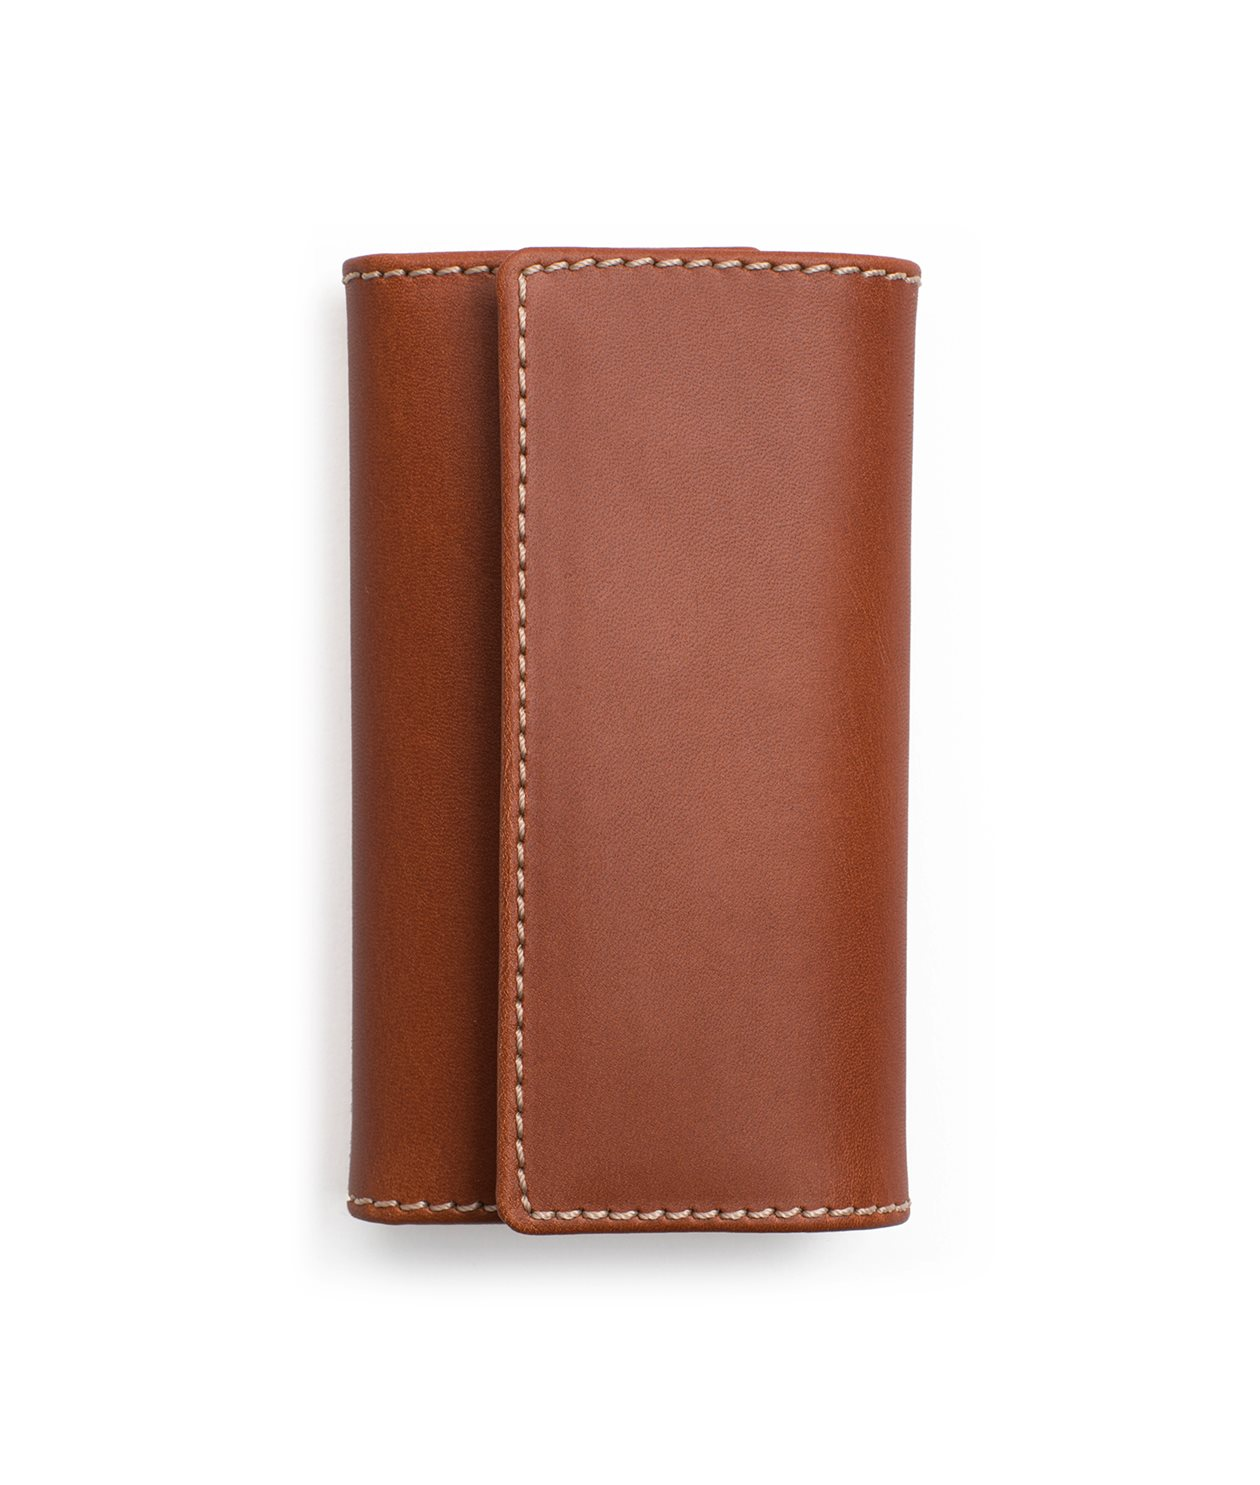 Palmgrens - Nyckelfodral Cognac - Genuine handcrafted leather since 1896 423ee4576d80f